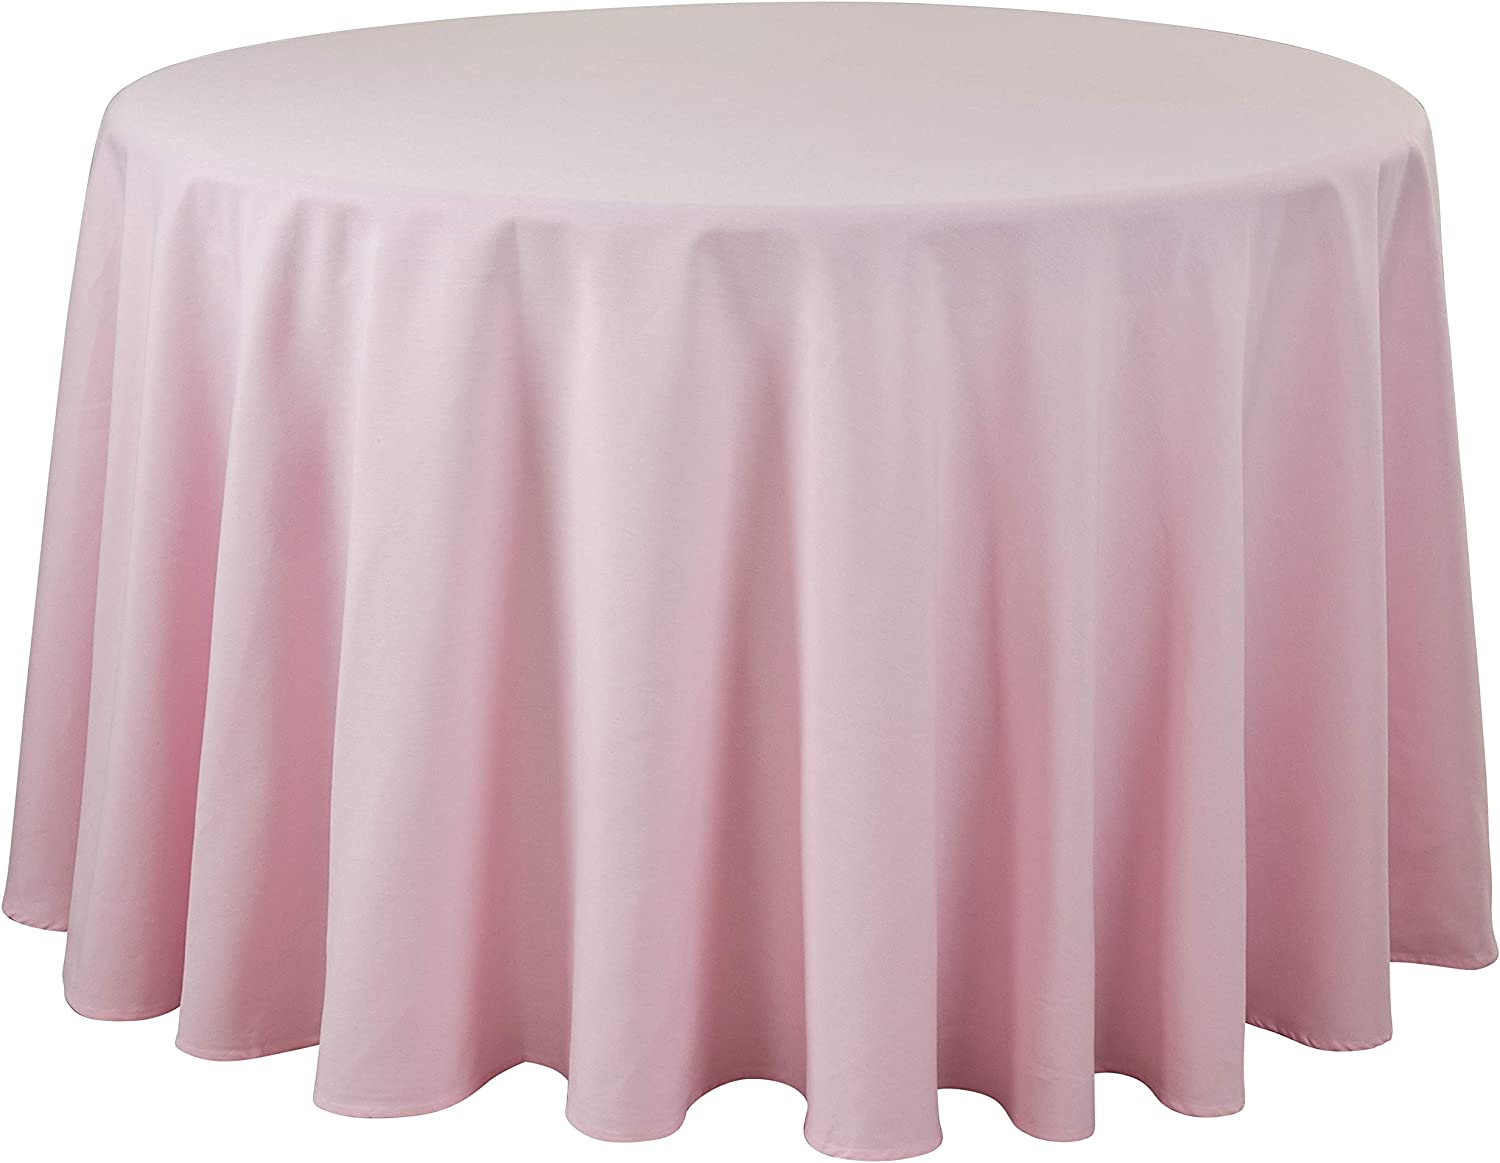 SARO LIFESTYLE At the price Collection Outstanding Casual Everyday 108 Design Tablecloth